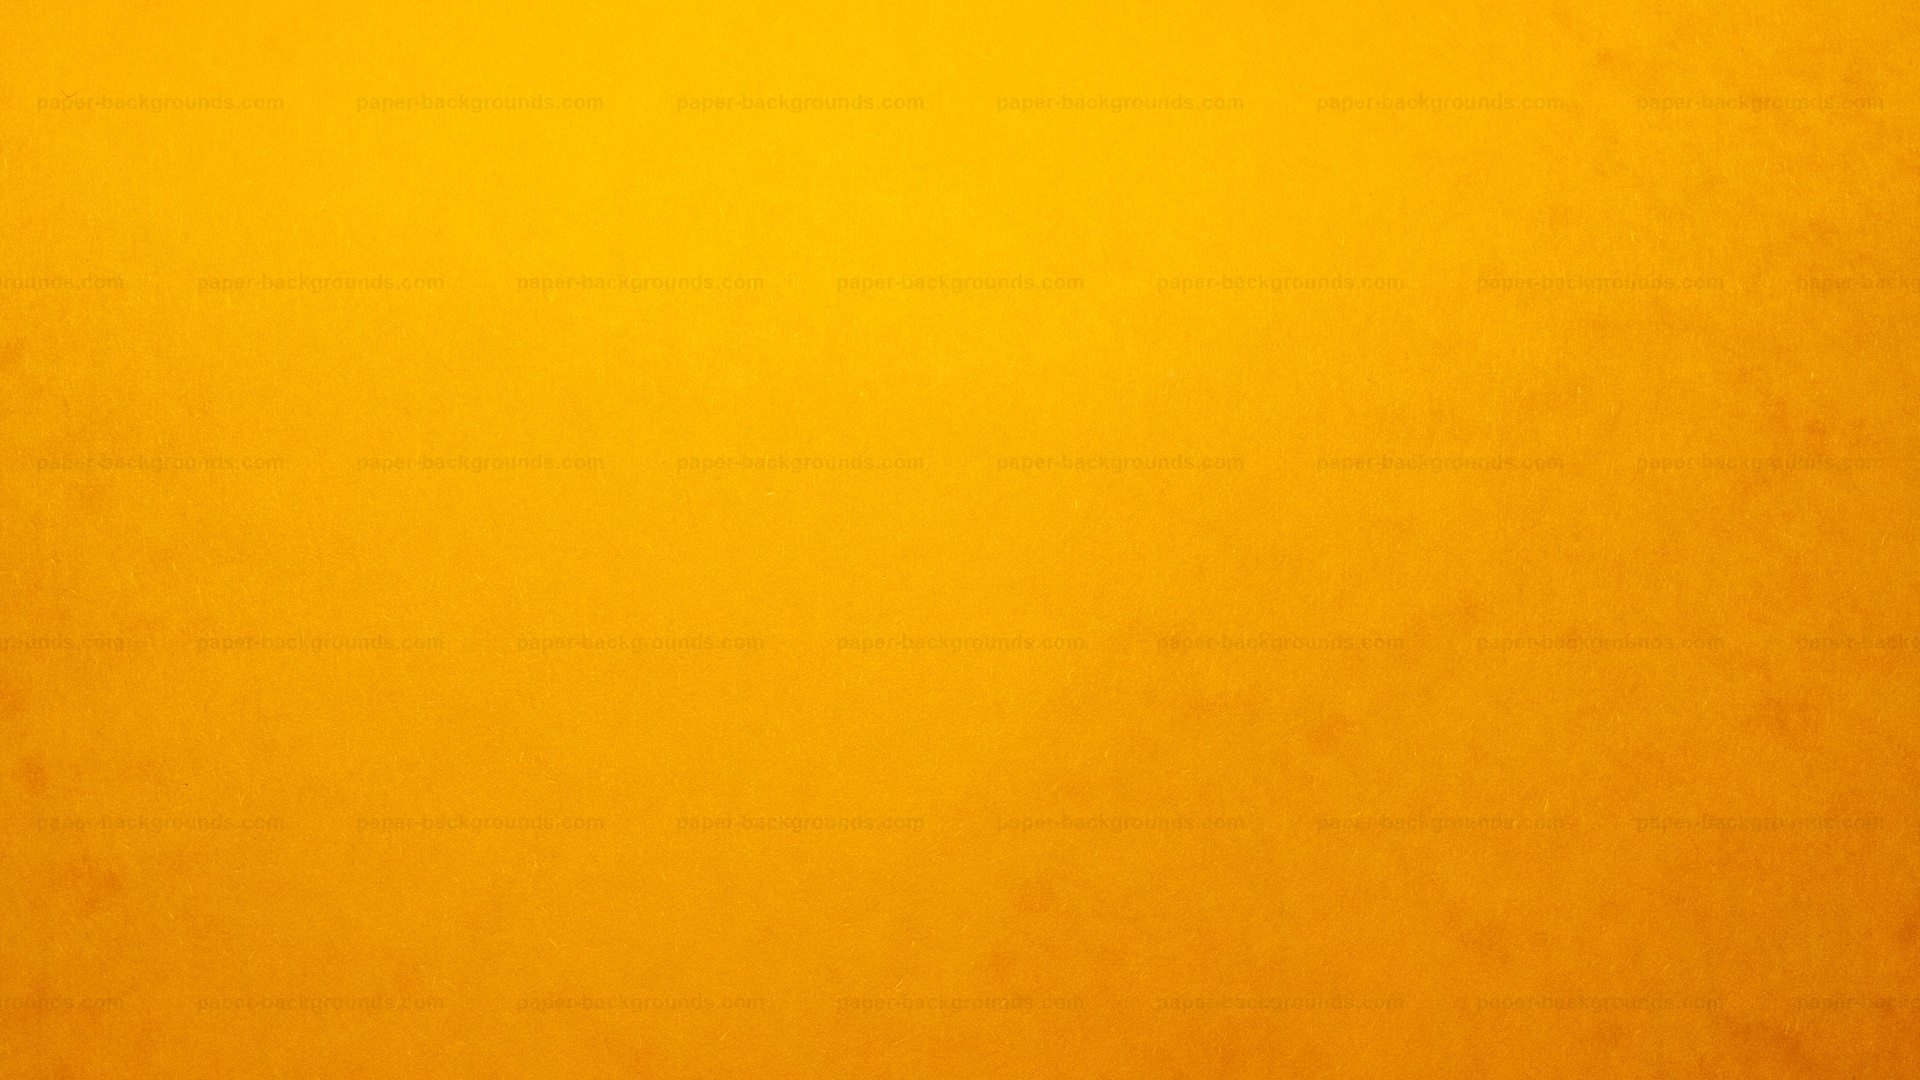 Yellow-Orange Cardboard Paper Background HD